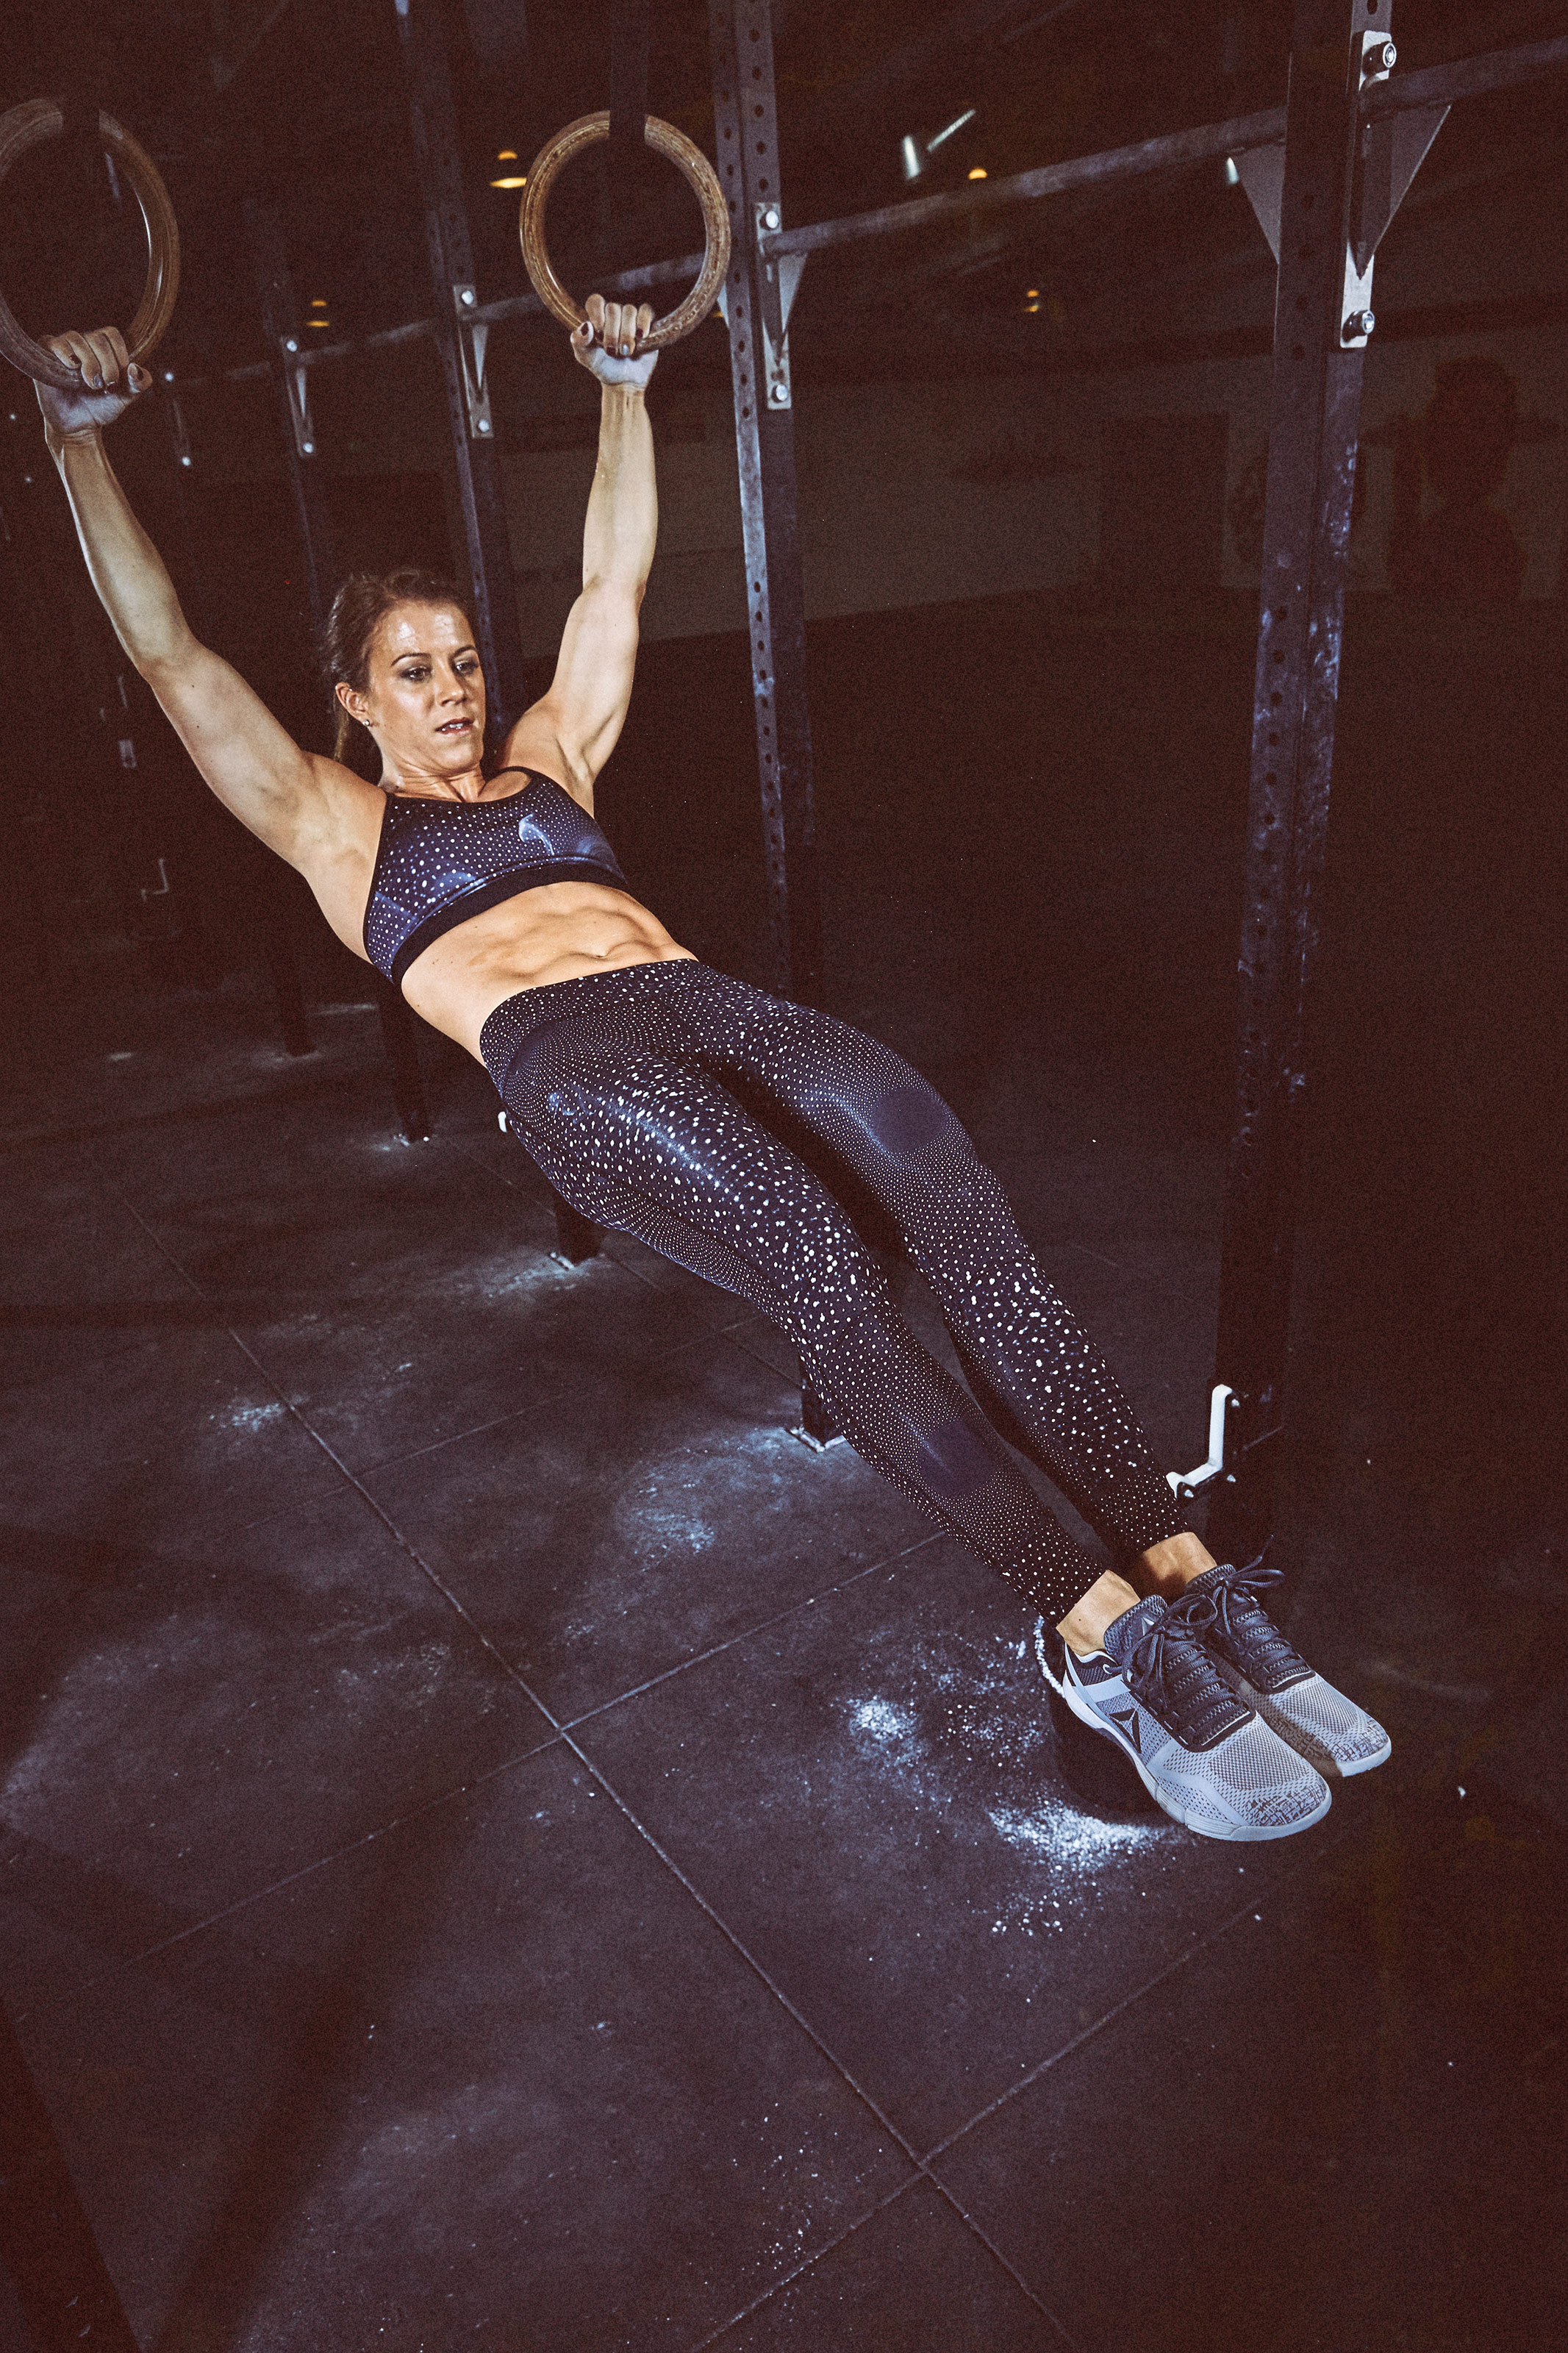 Kristin Holte for Reebok Crossfit